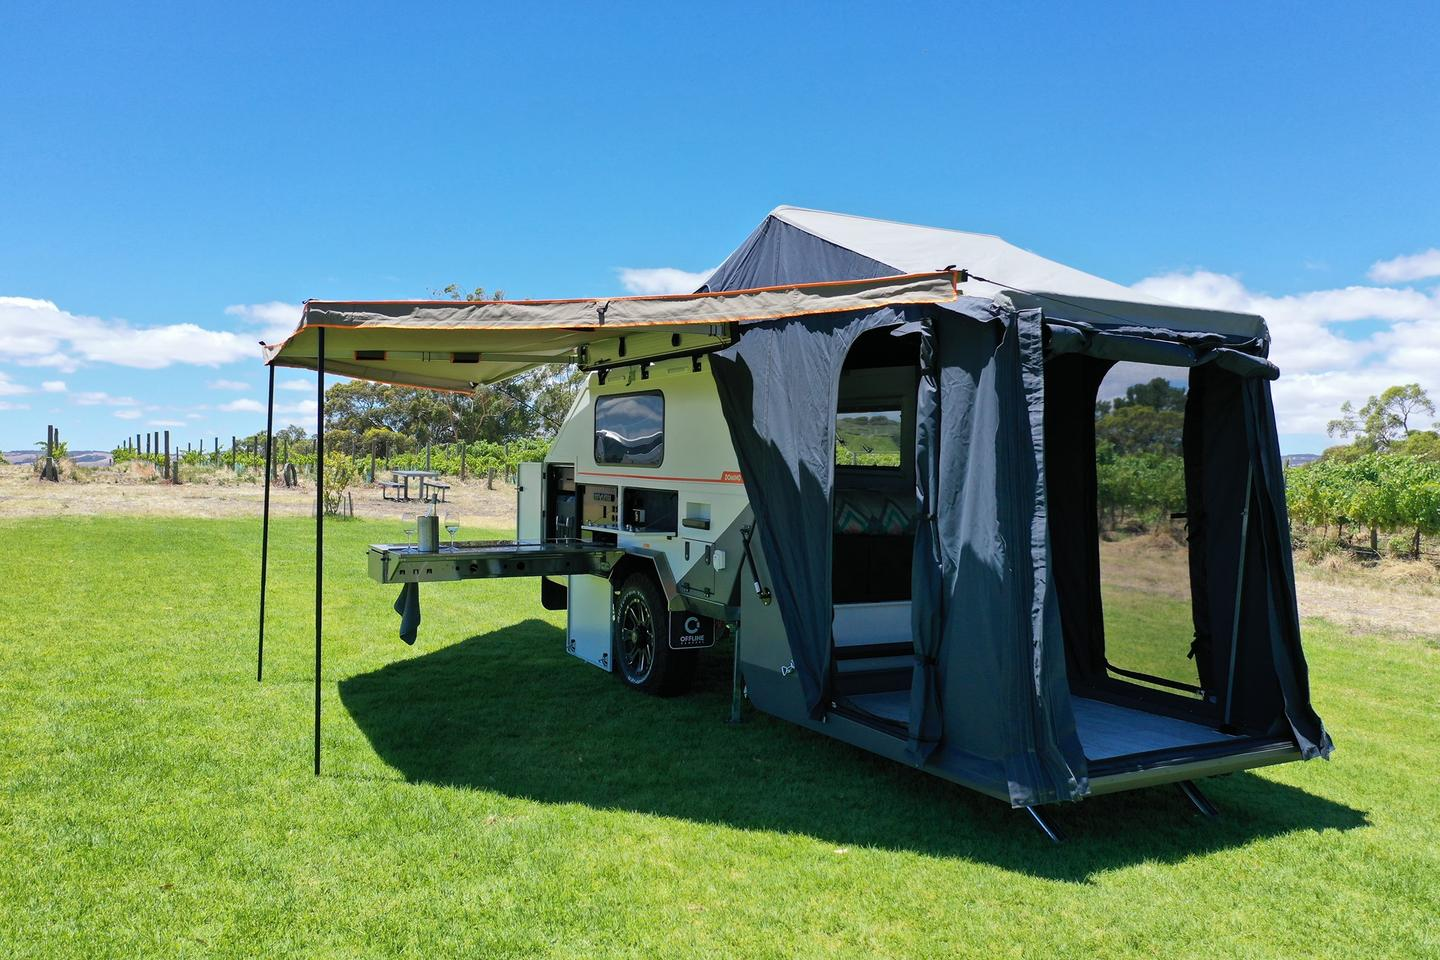 When fully set up, the Offline Domino includes a shaded outdoor kitchen, changing room tent and cozy hard-sided sleeping cabin